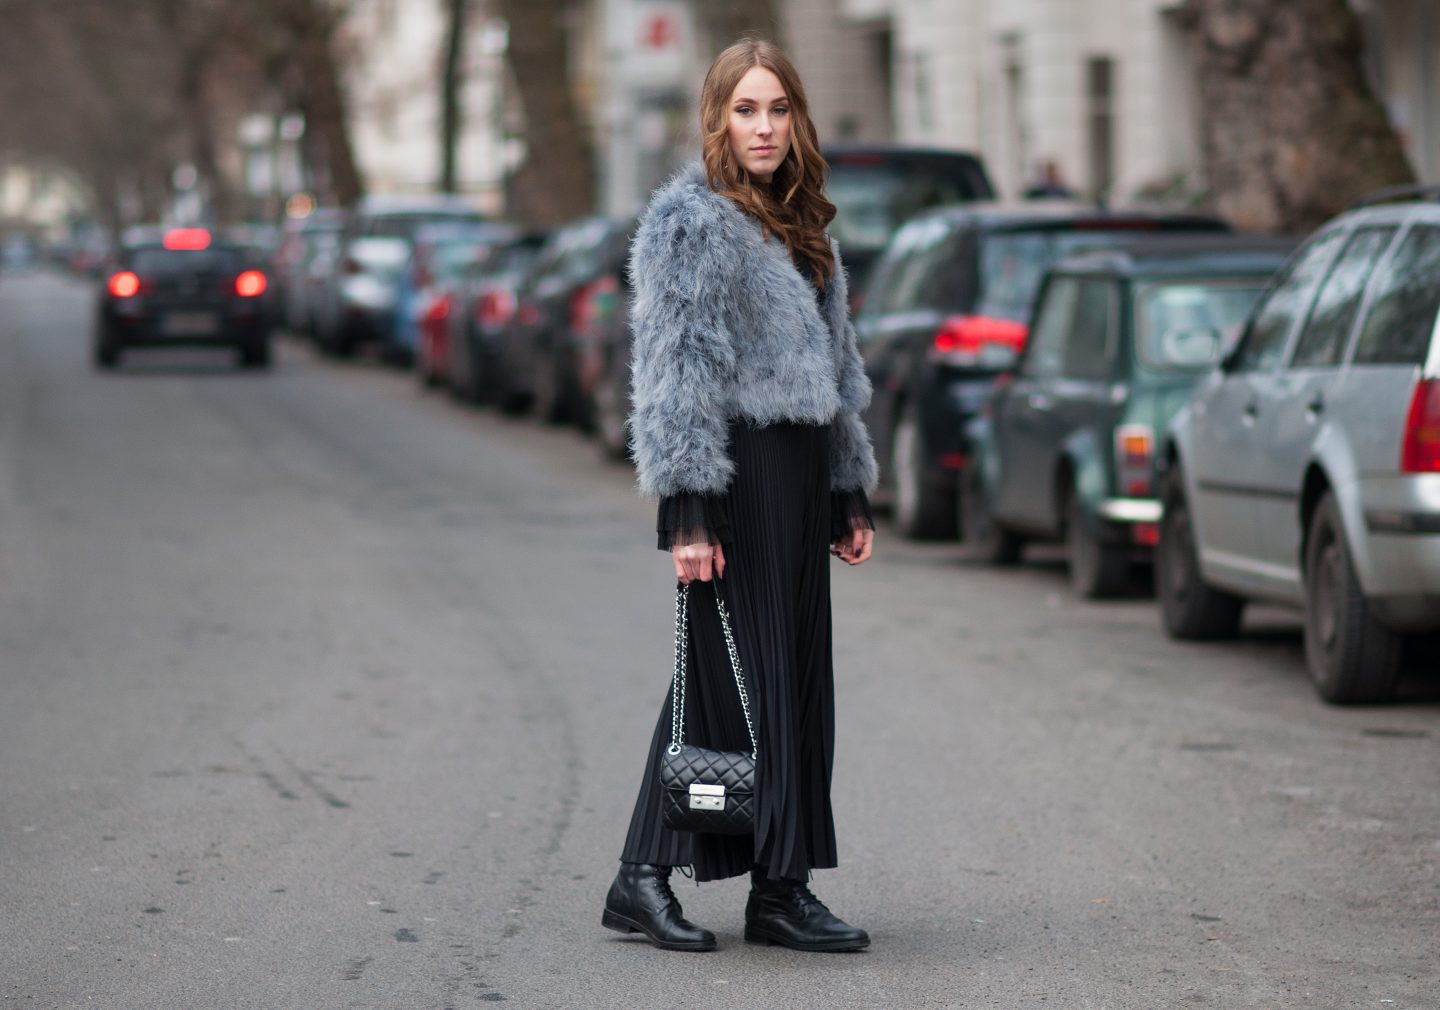 MBFW Outfit - 6